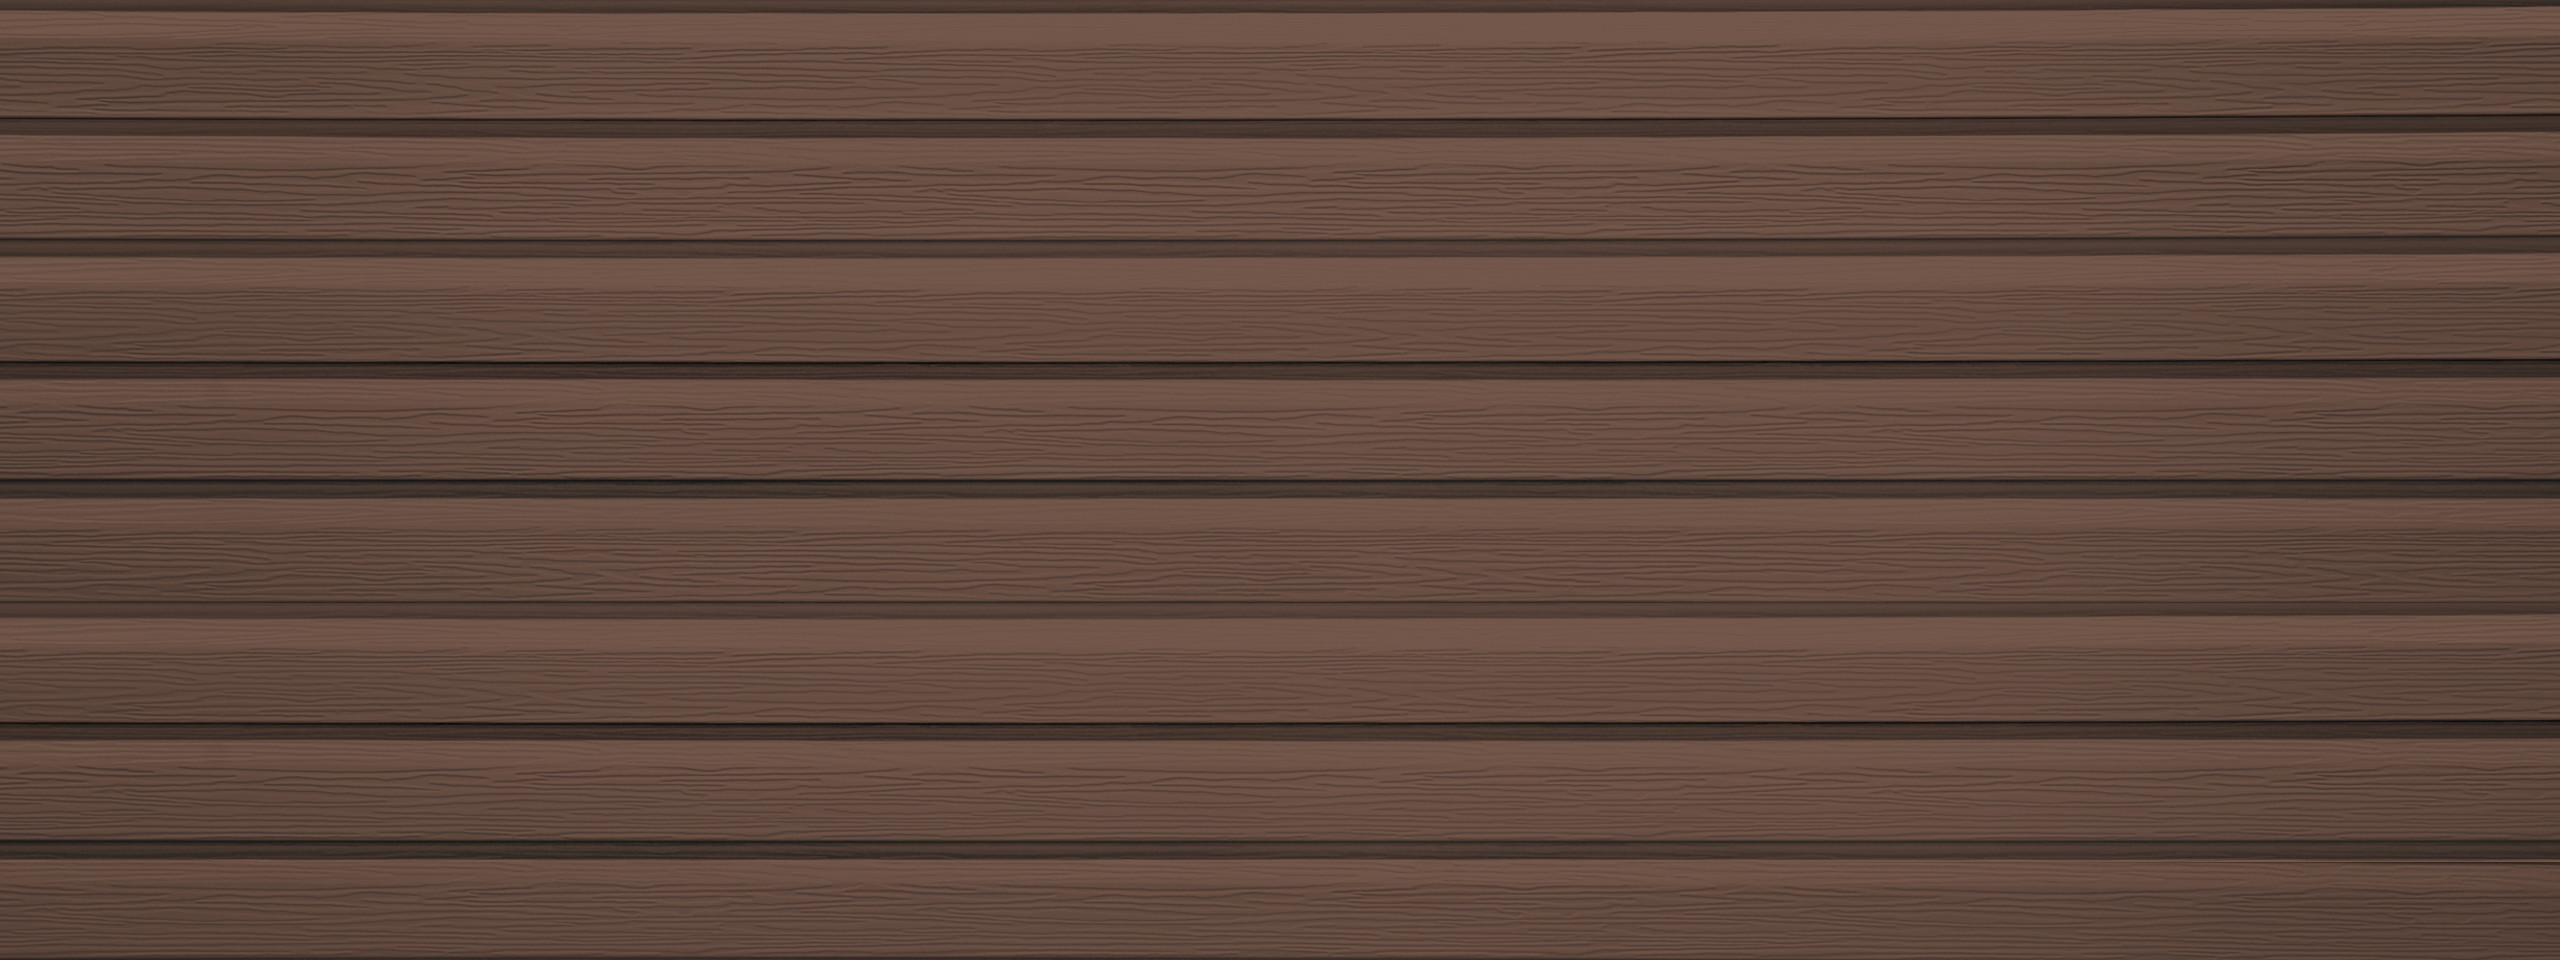 Entex dutchlap mahogany steel siding